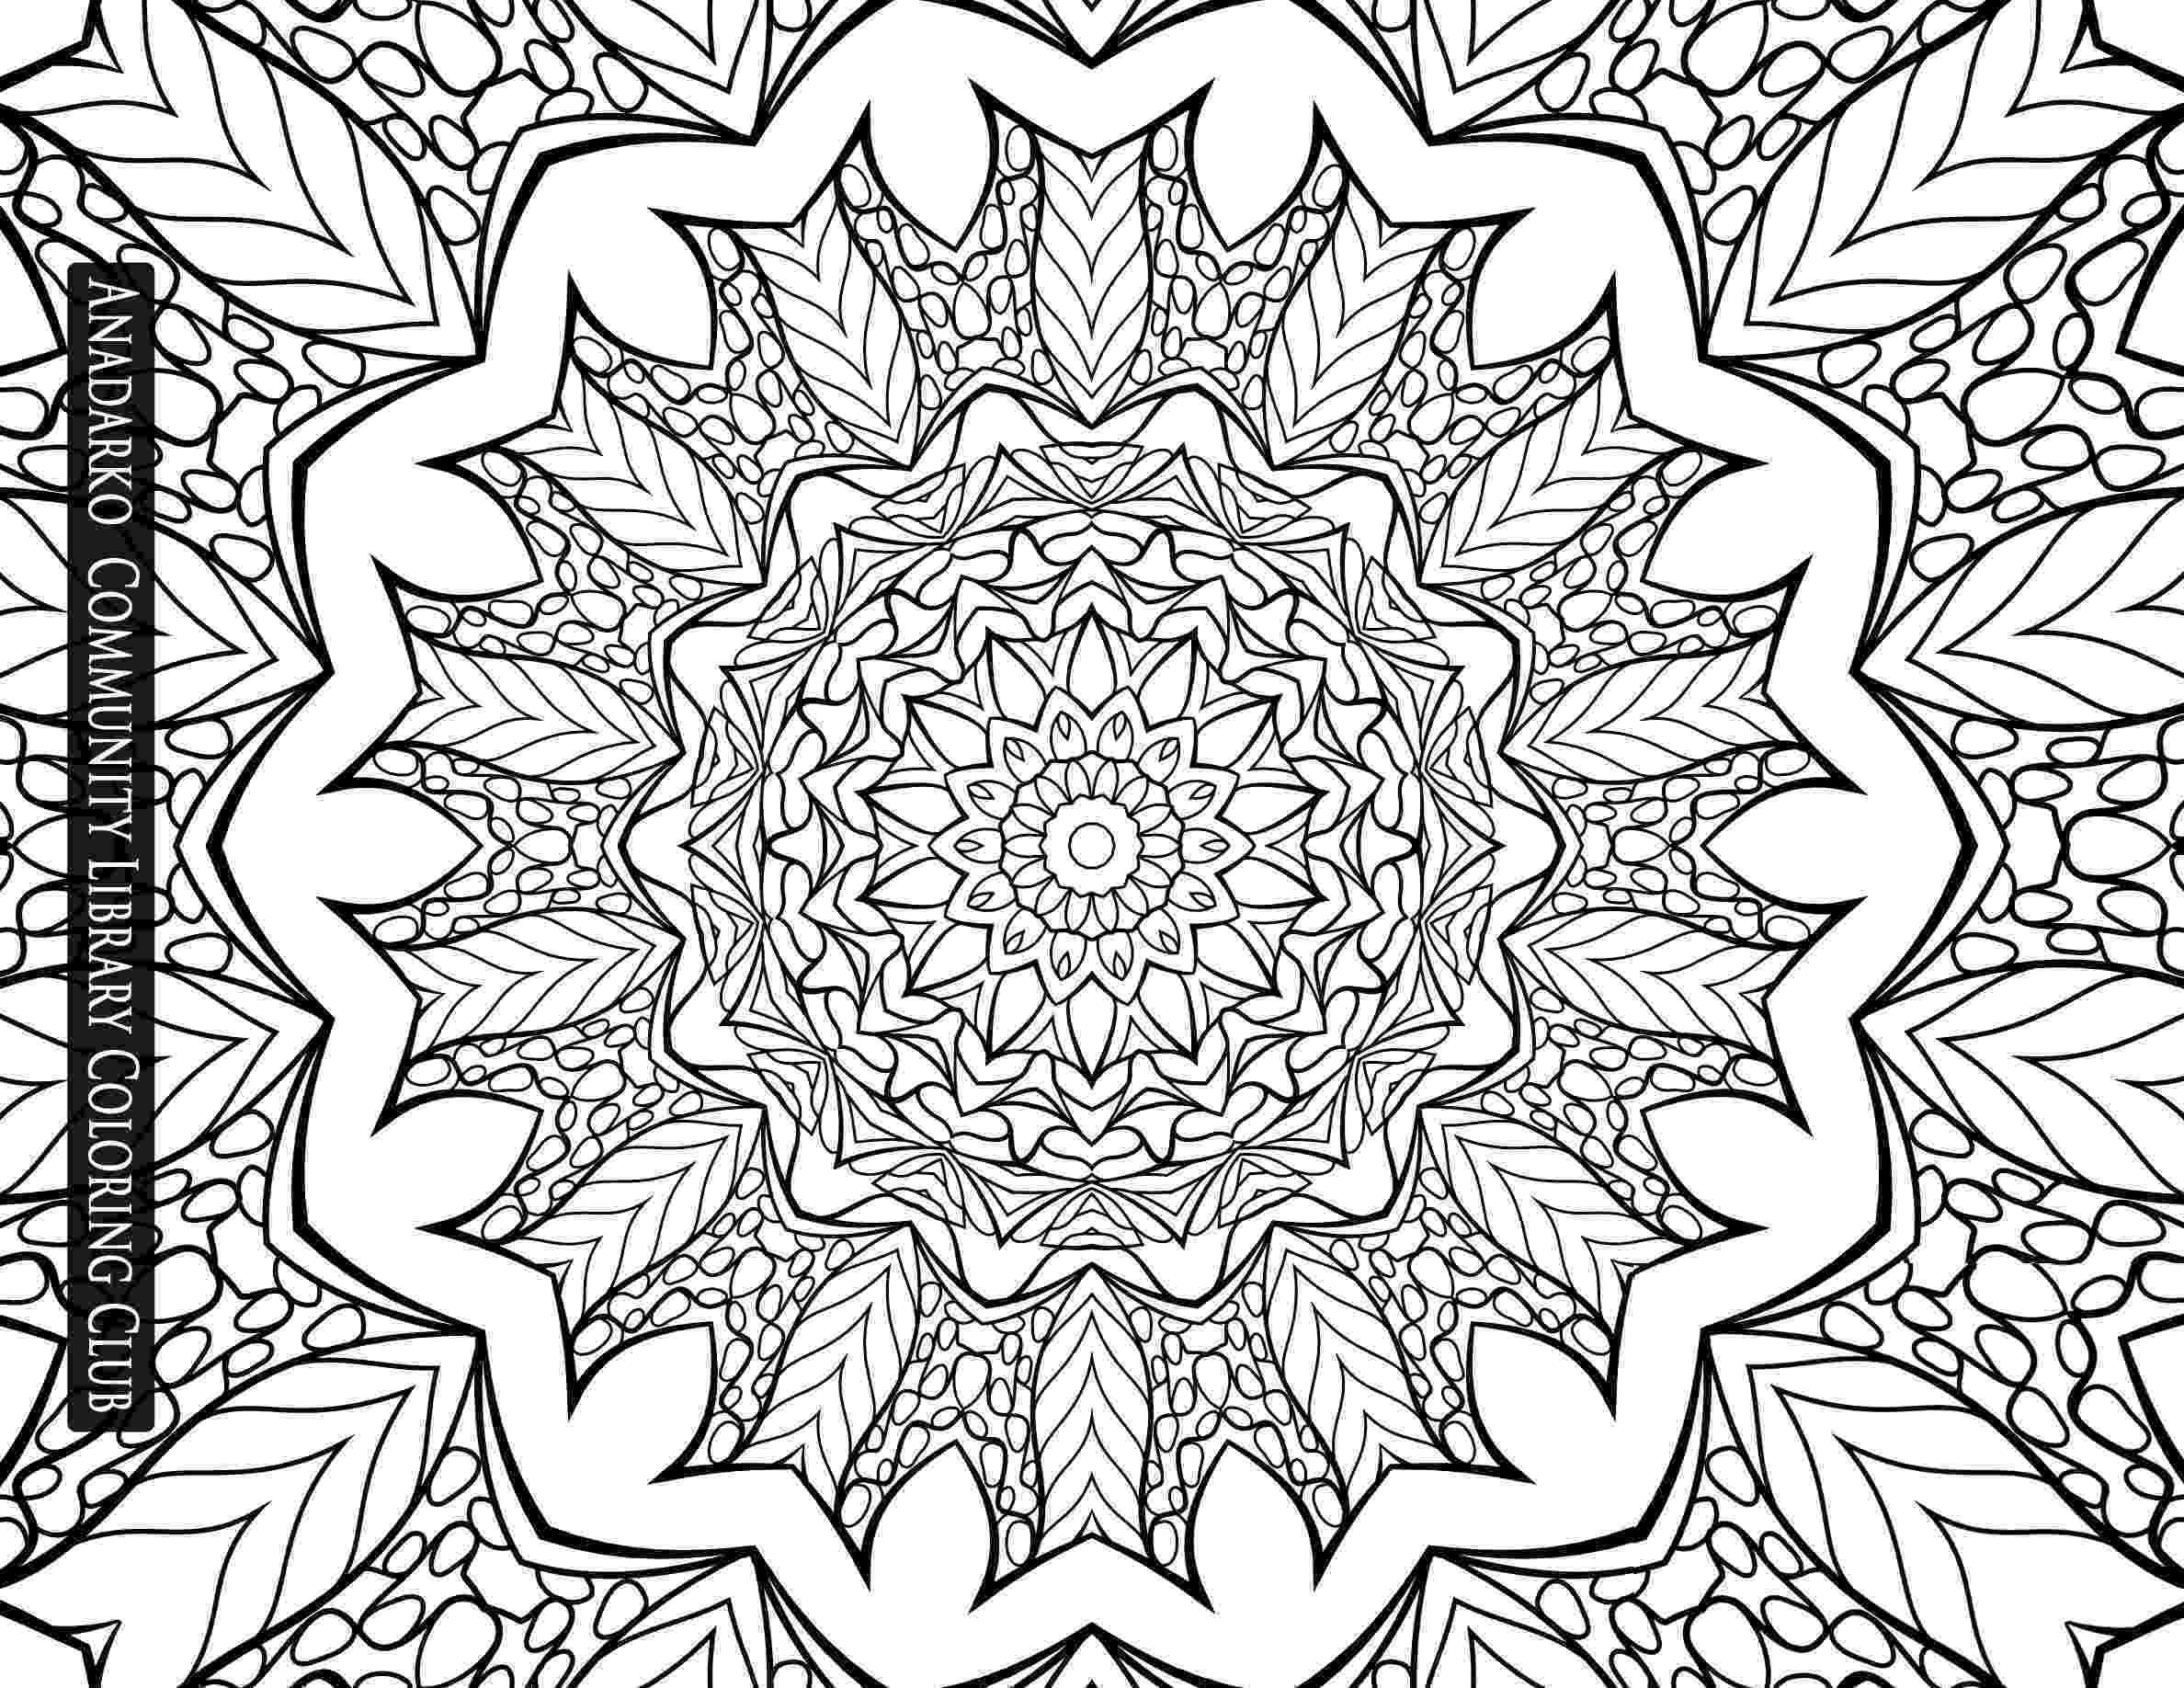 colouring pages for adults print 3 free adult coloring pages digital or printable liz print colouring pages for adults